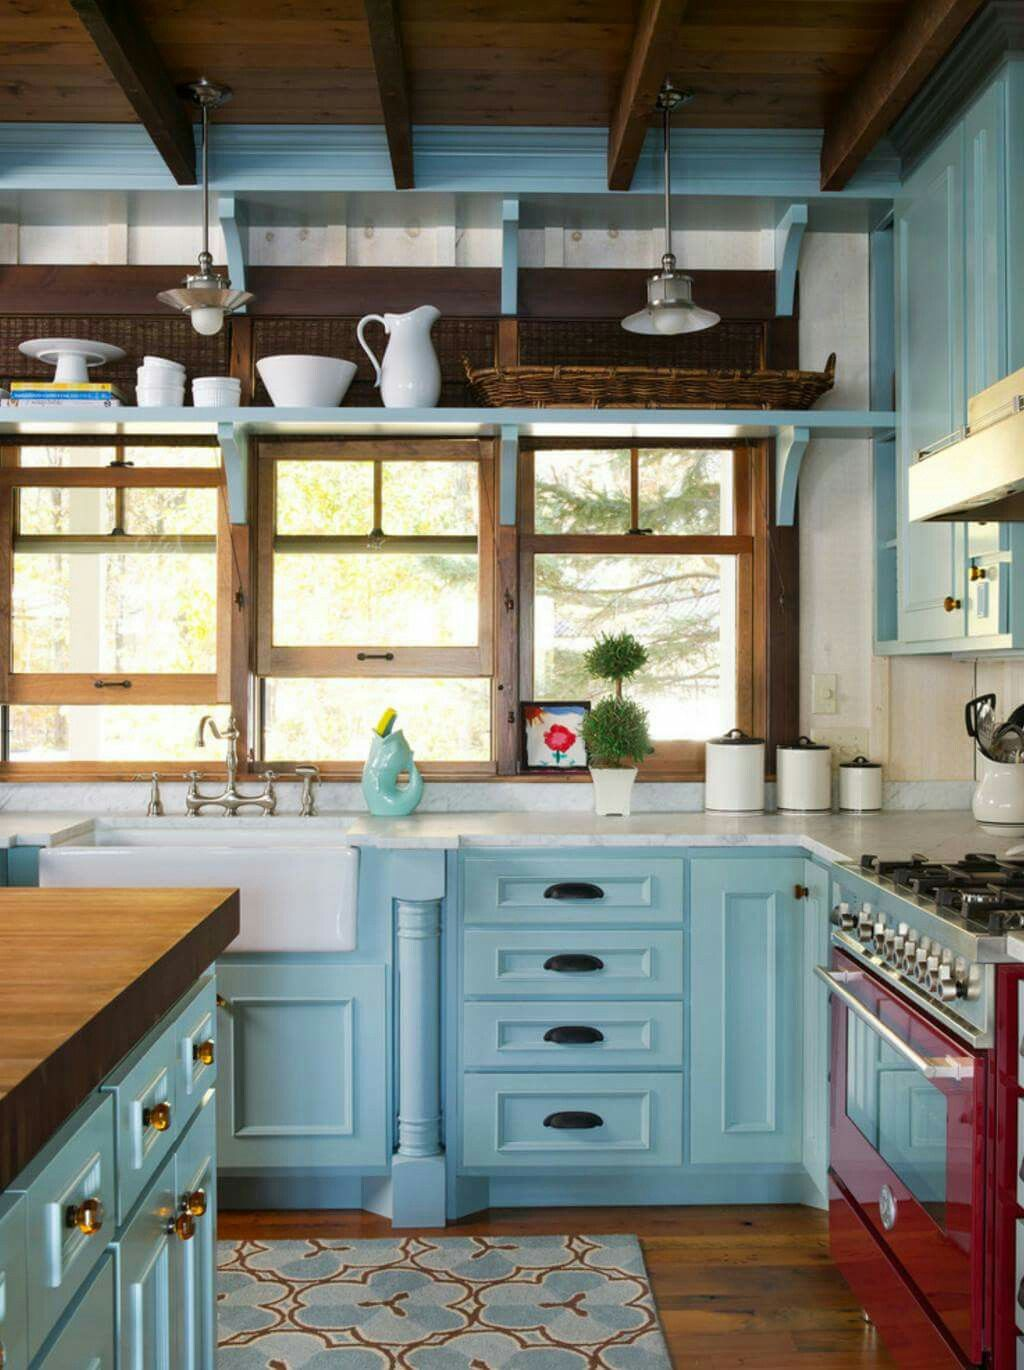 Pin by Heather Blackwell on Color | Pinterest | Kitchens, House and ...